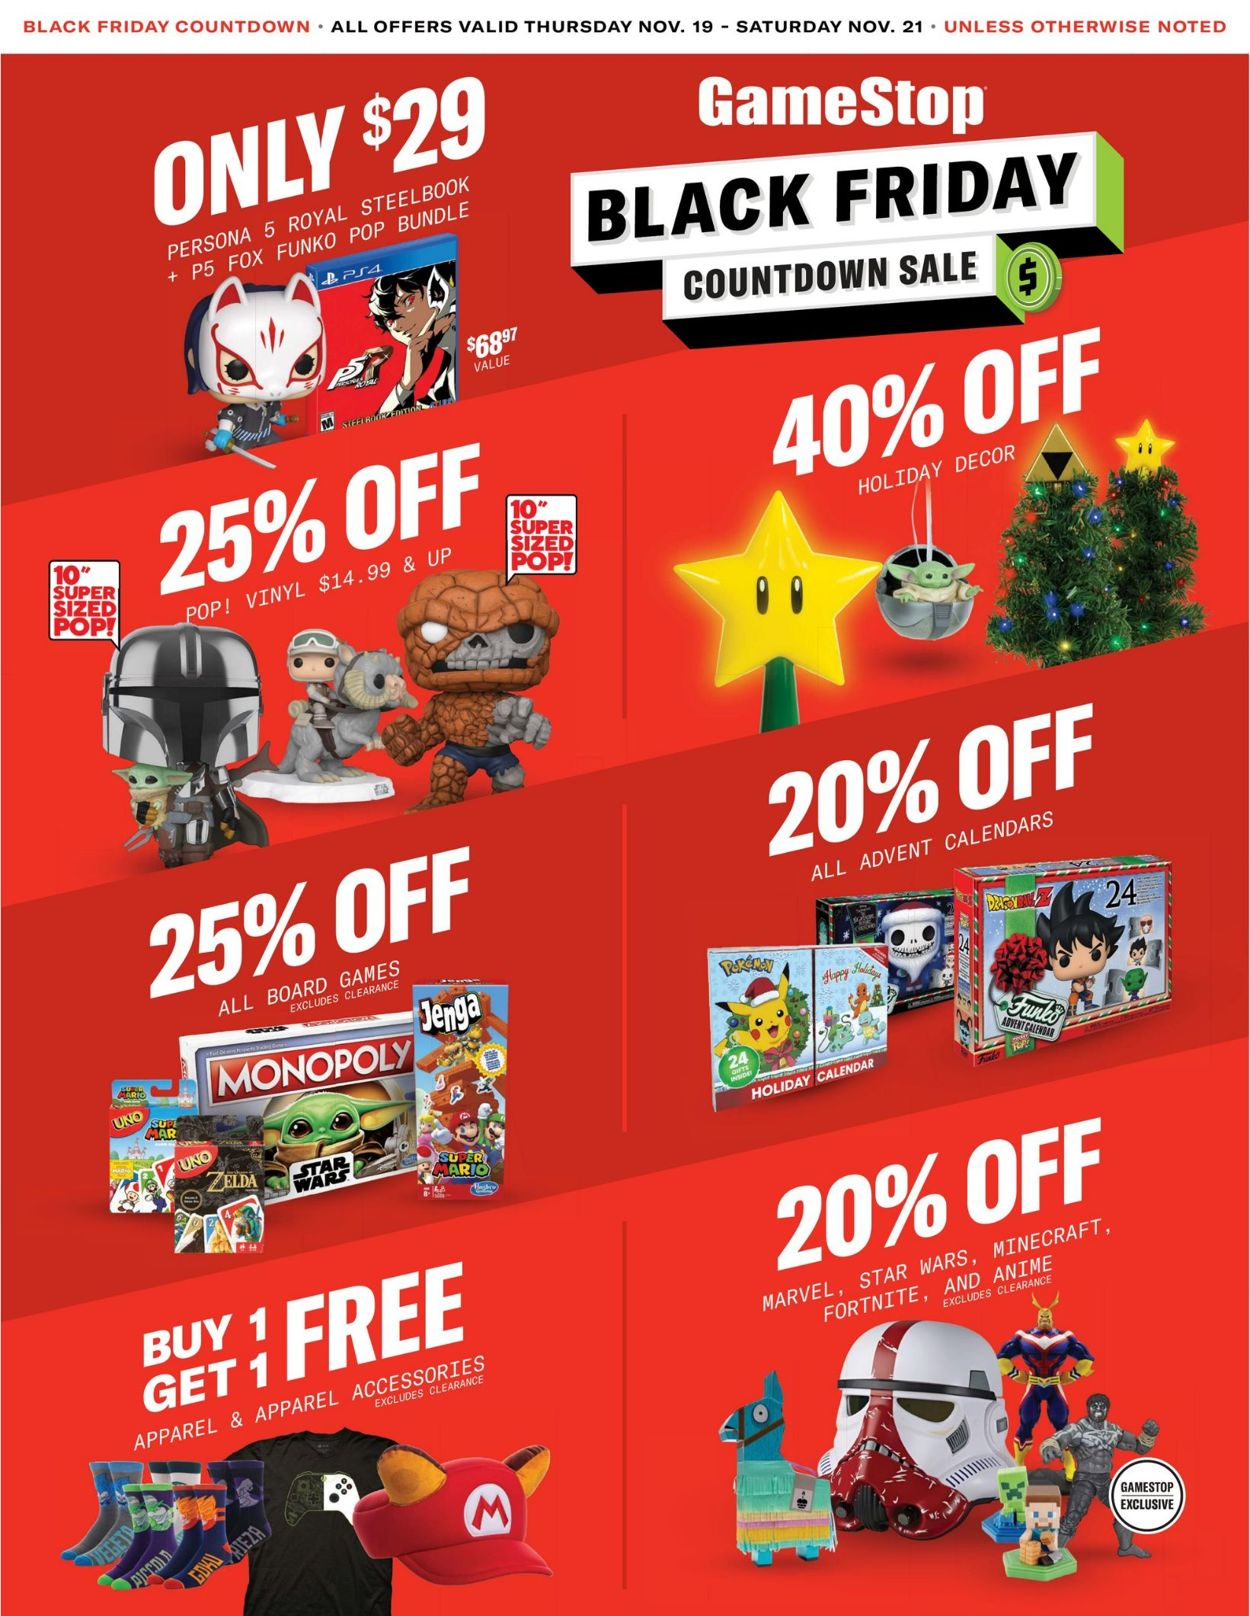 Game Stop Black Friday 2020 Current Weekly Ad 11 19 11 21 2020 Frequent Ads Com